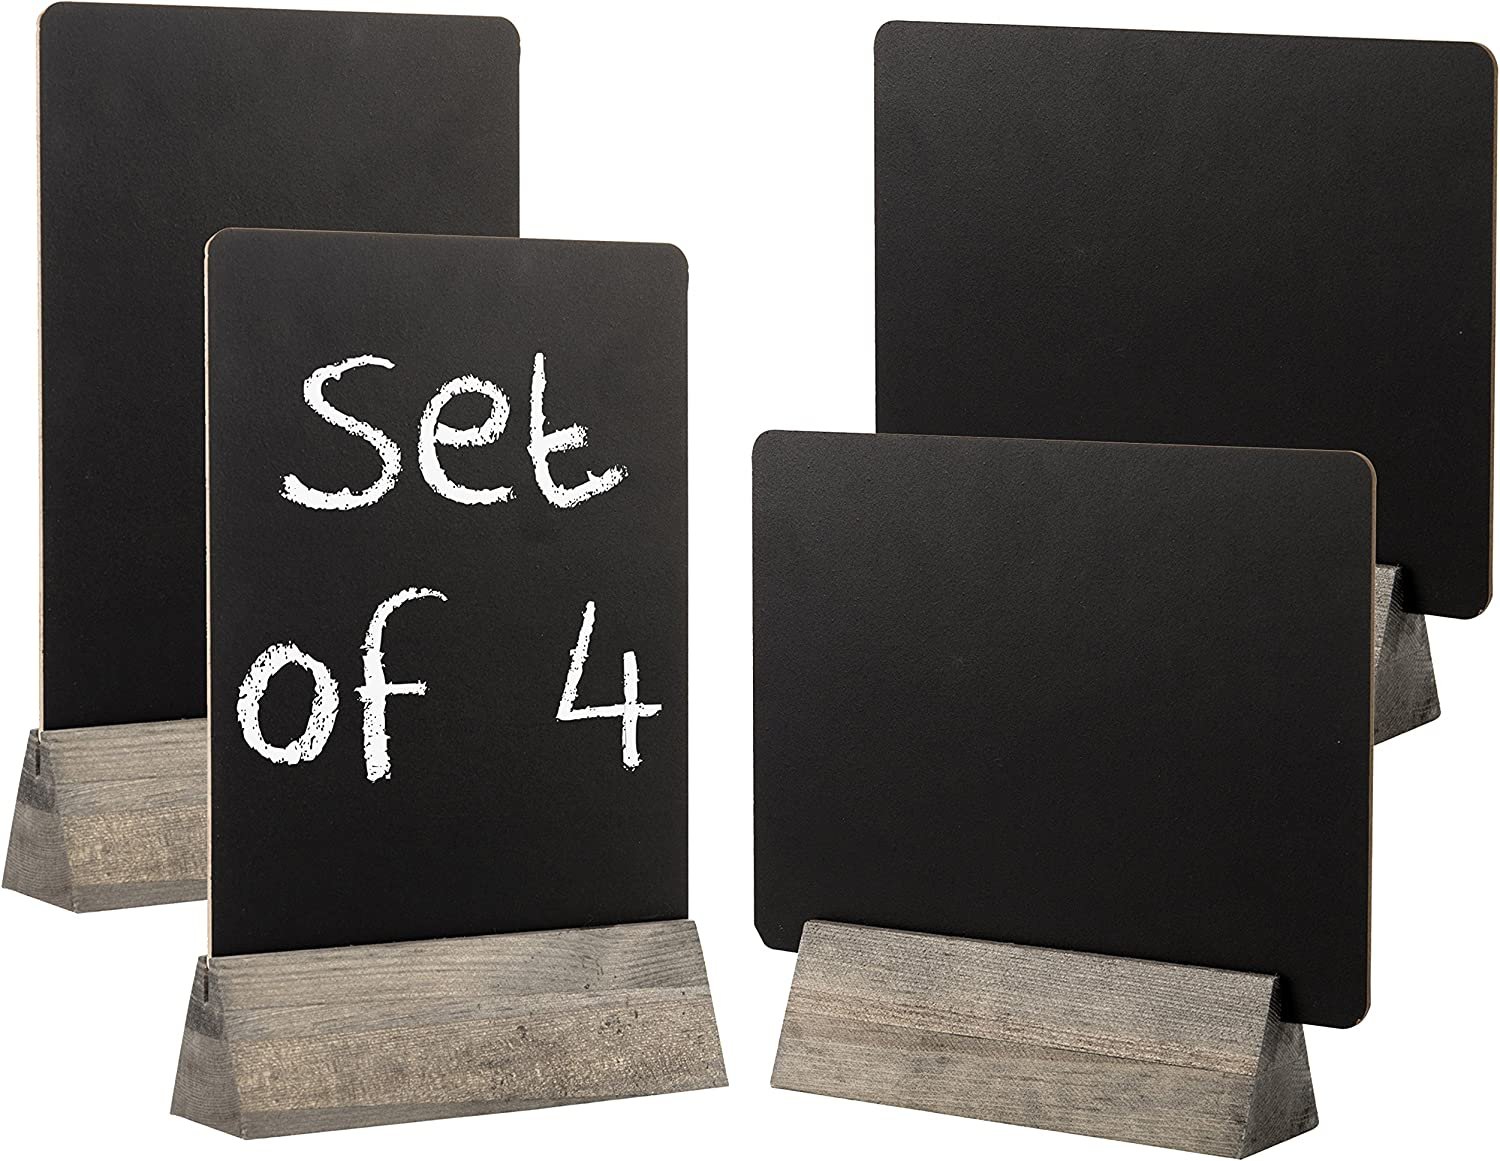 Set of 4 Tabletop Double Sided Chalkboard Display Sign, Placeholder with Rustic Gray Wood Stand